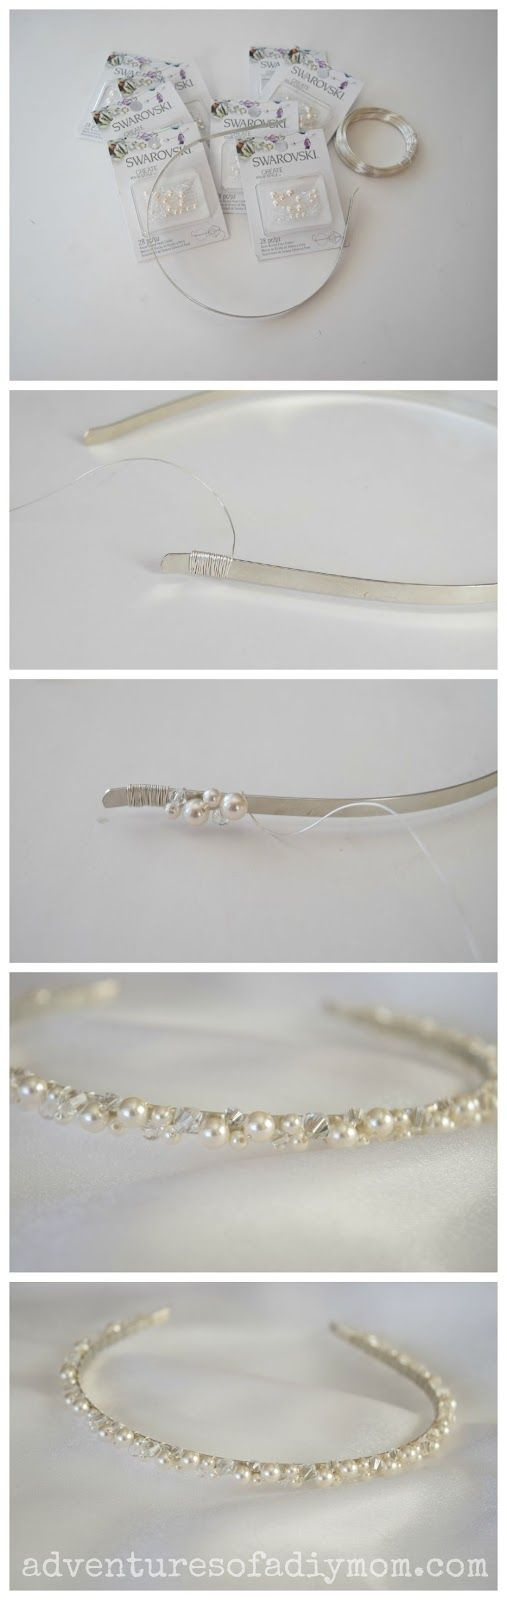 How to Make a Pearl and Crystal Headband |Adventures of a DIY Mom